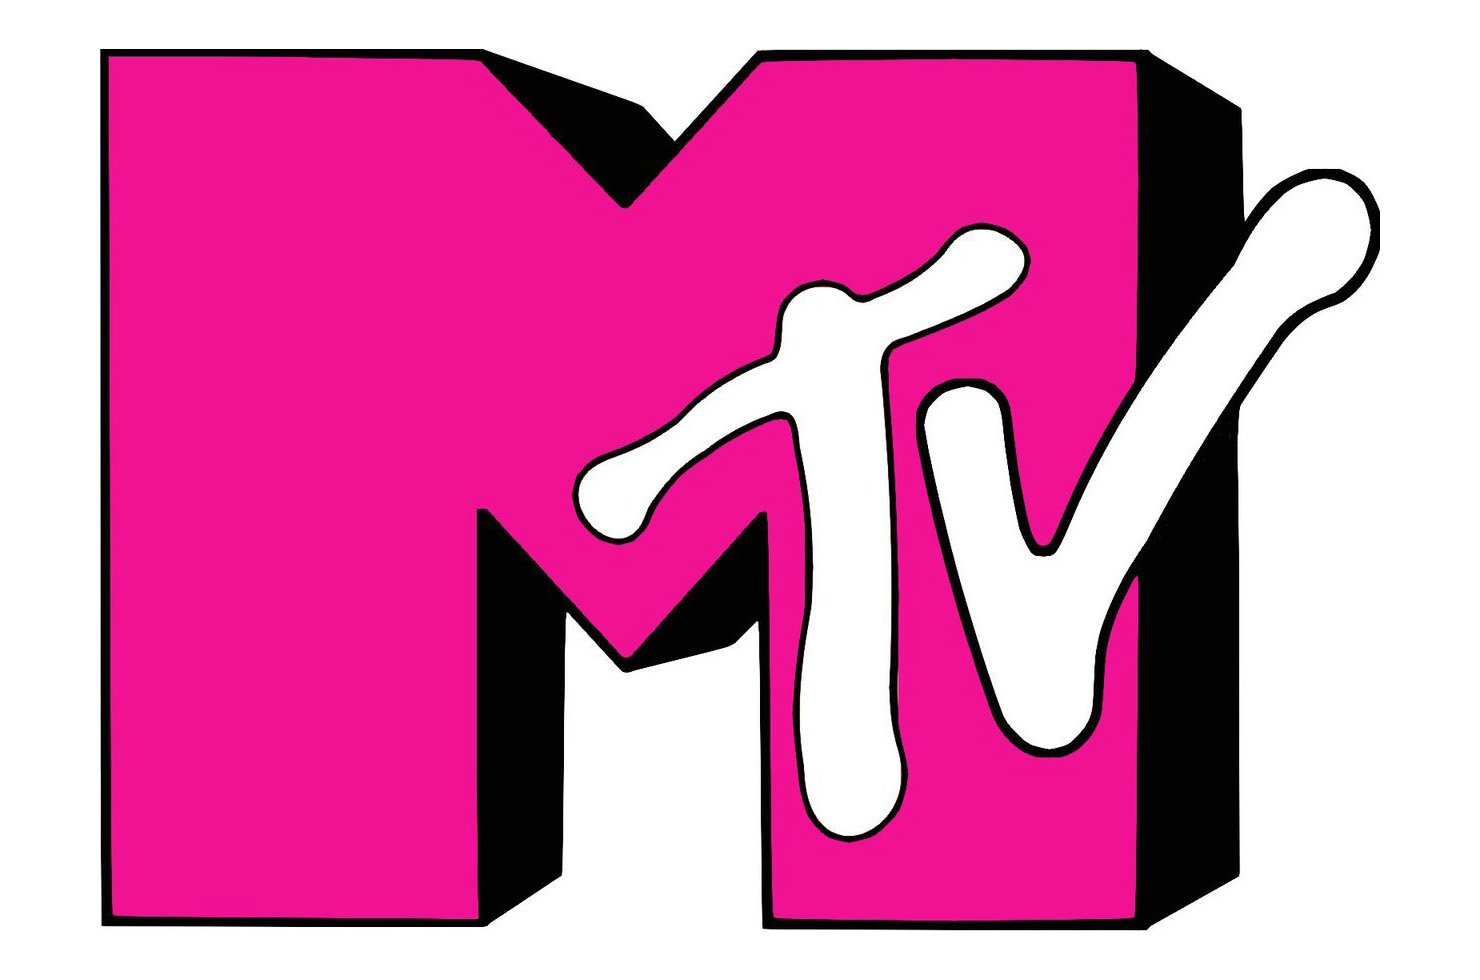 Meaning MTV logo and symbol.